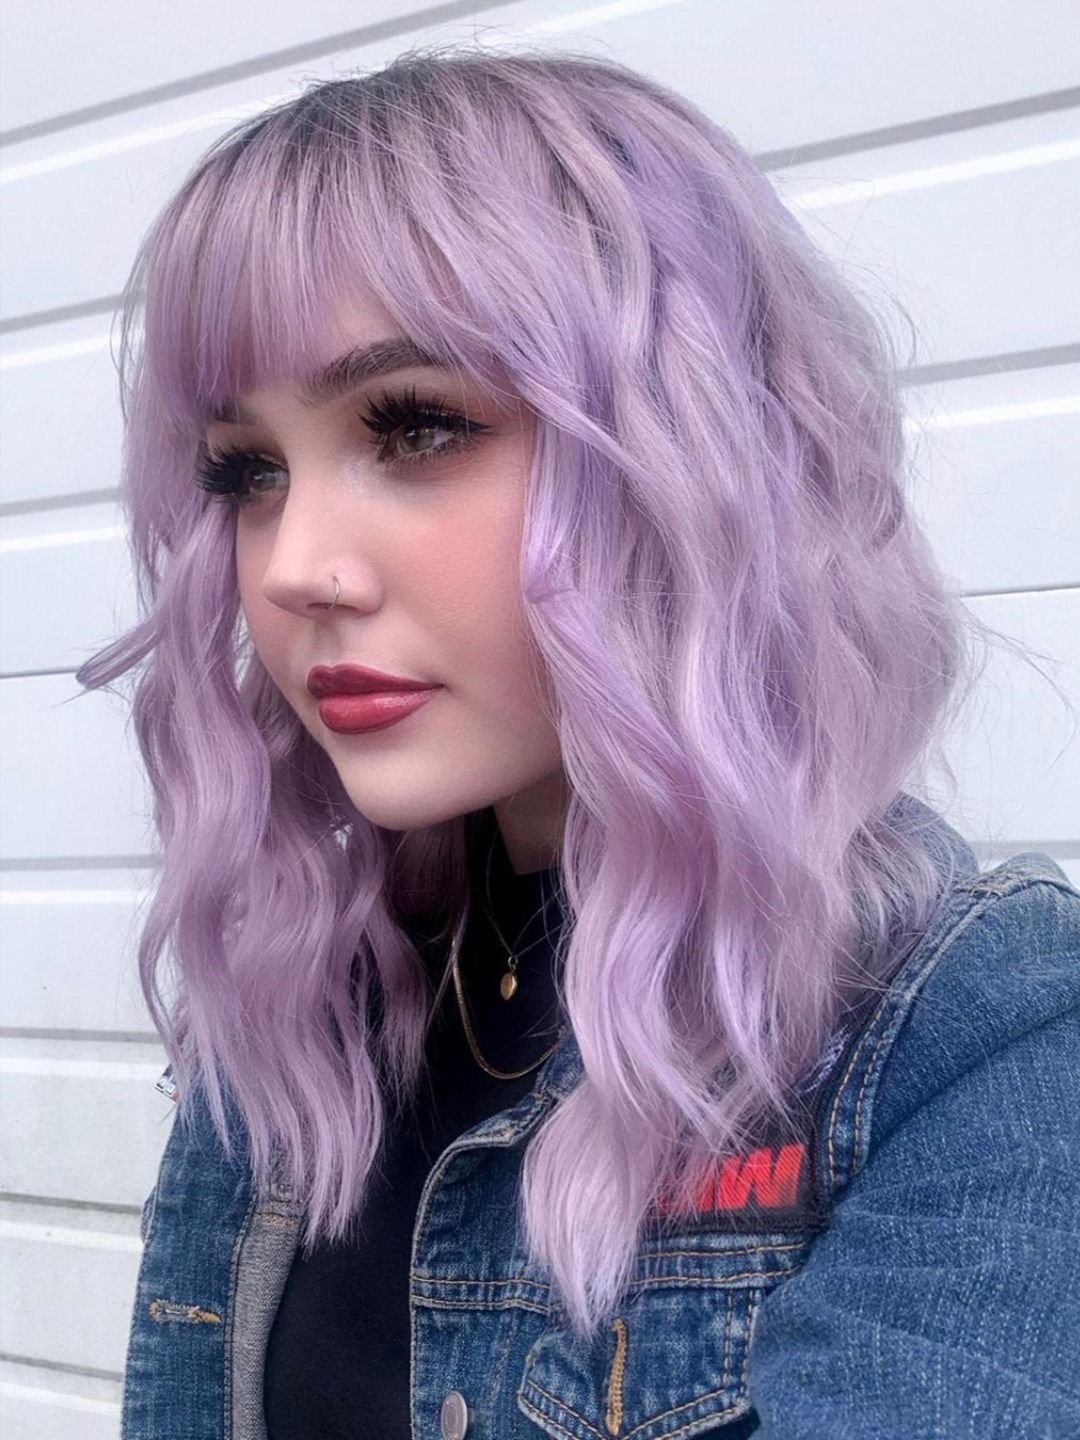 Emma8bit Egirl Status Achieved Lilac Hair Lilac Hair Dyed Hair Emo Hair Pastel Hair Blue Hair Gray Hair Pur In 2020 Light Purple Hair Hair Inspo Color Aesthetic Hair